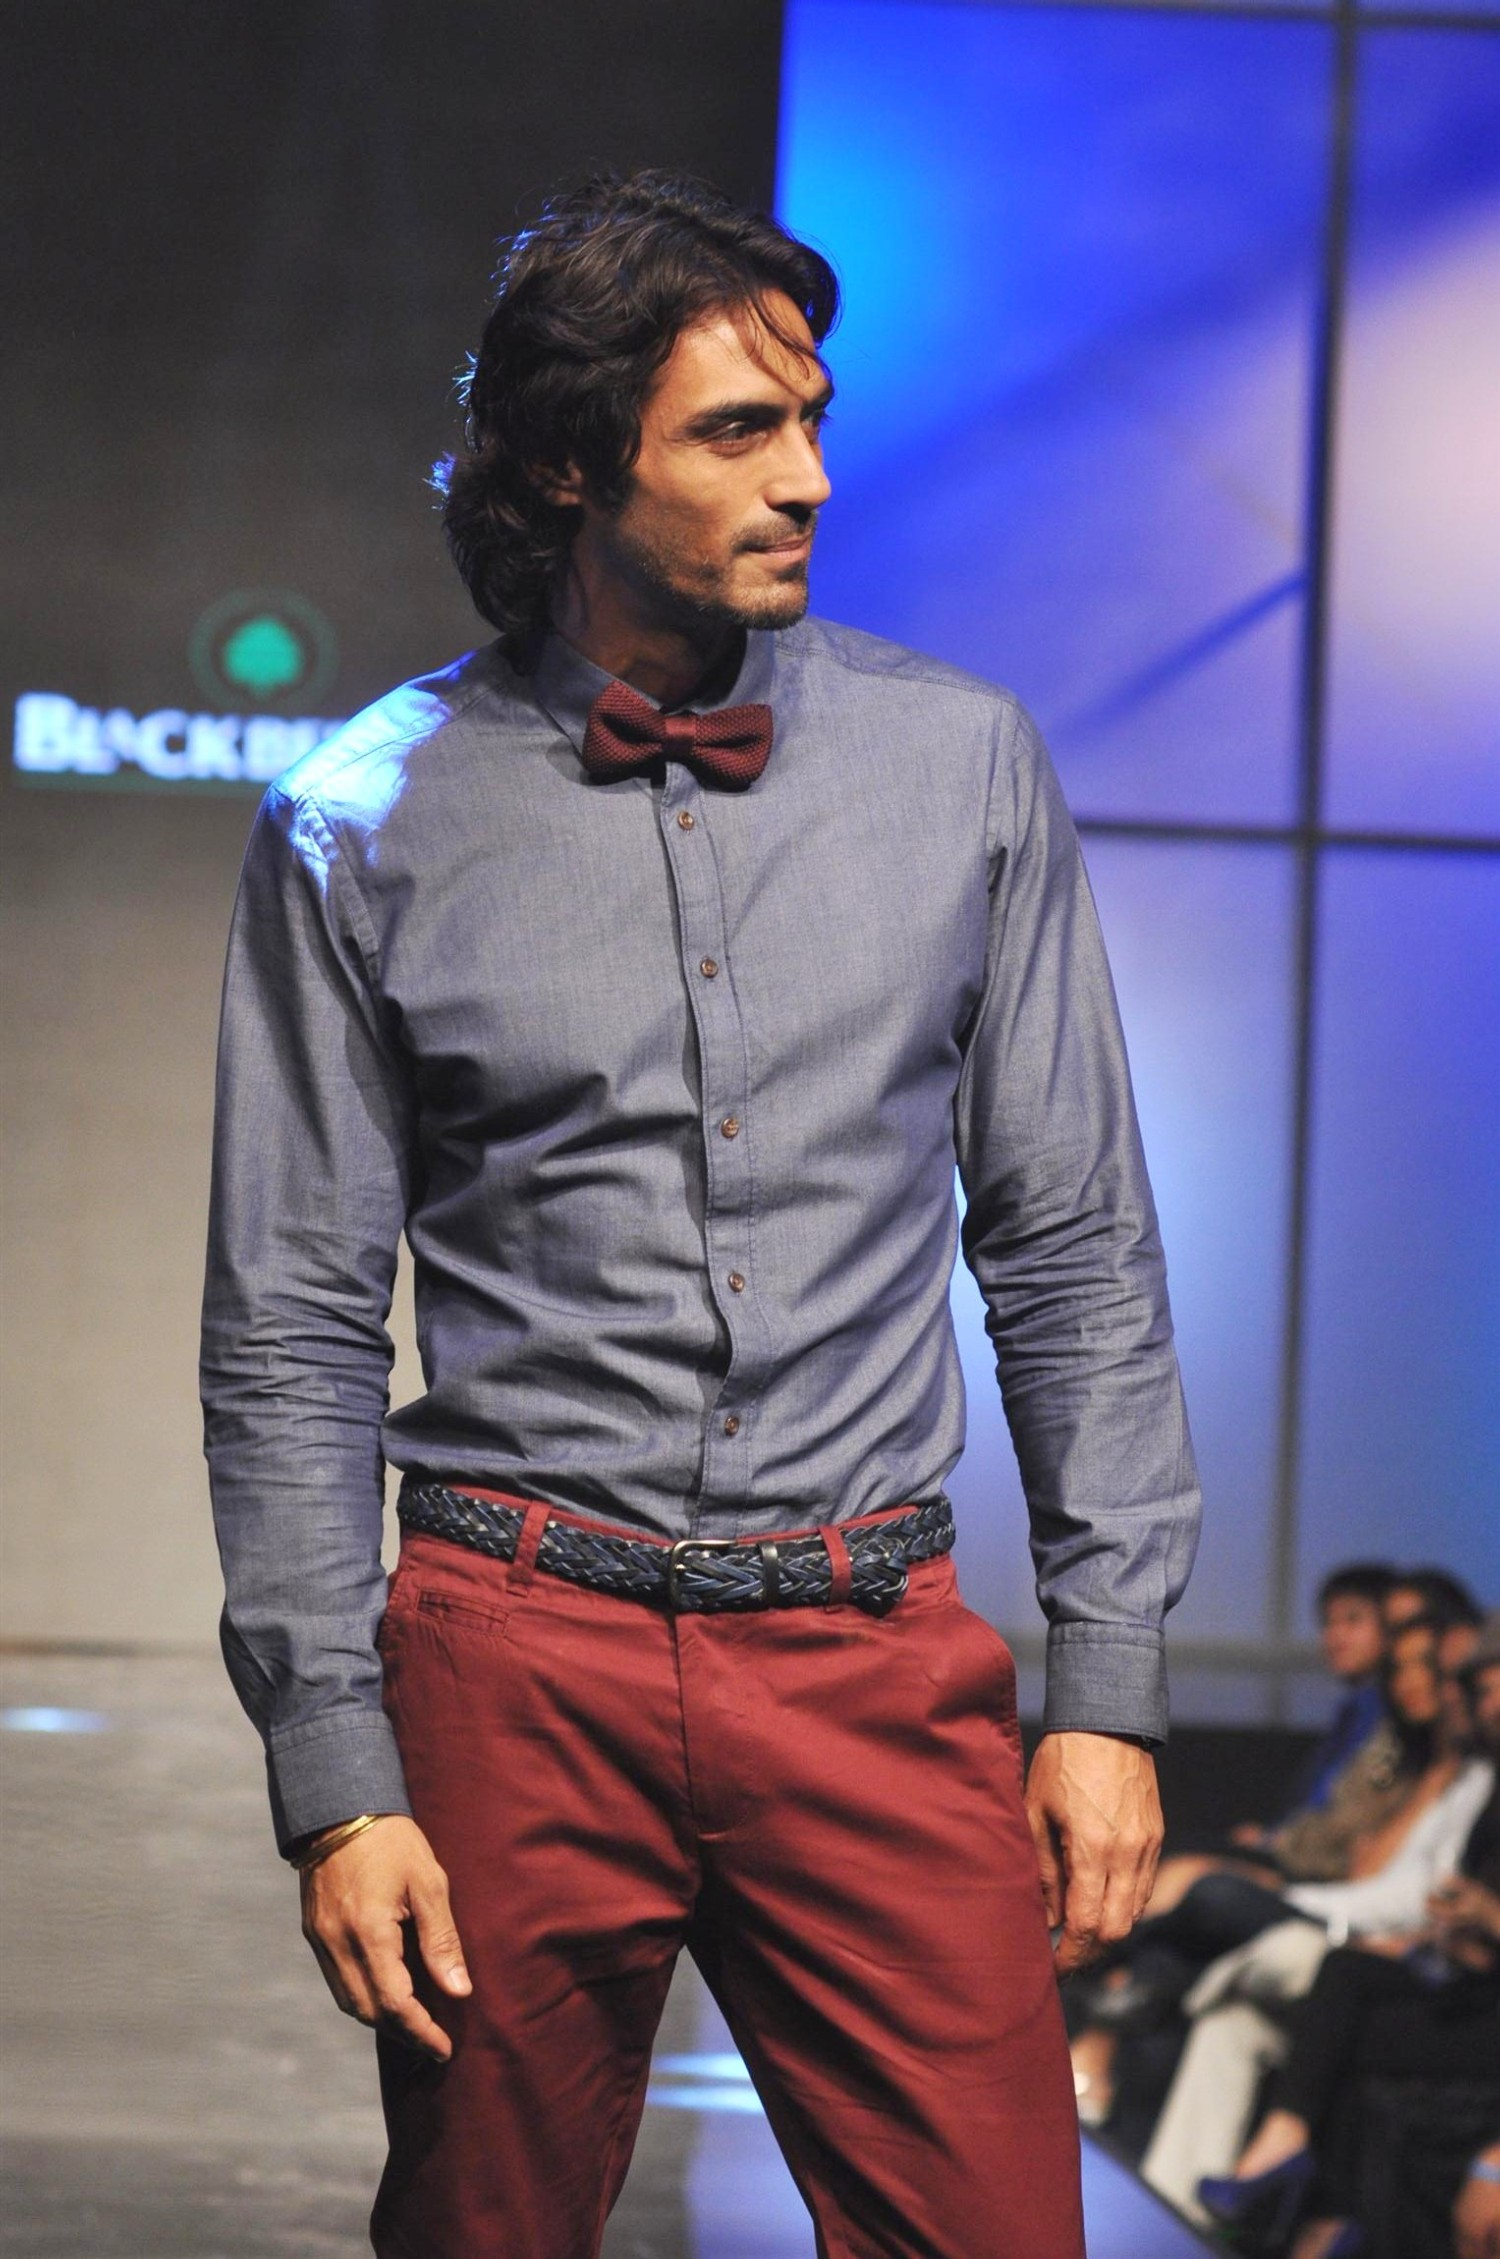 Arjun Rampal Hd Wallpapers 13 22 Popopics Com